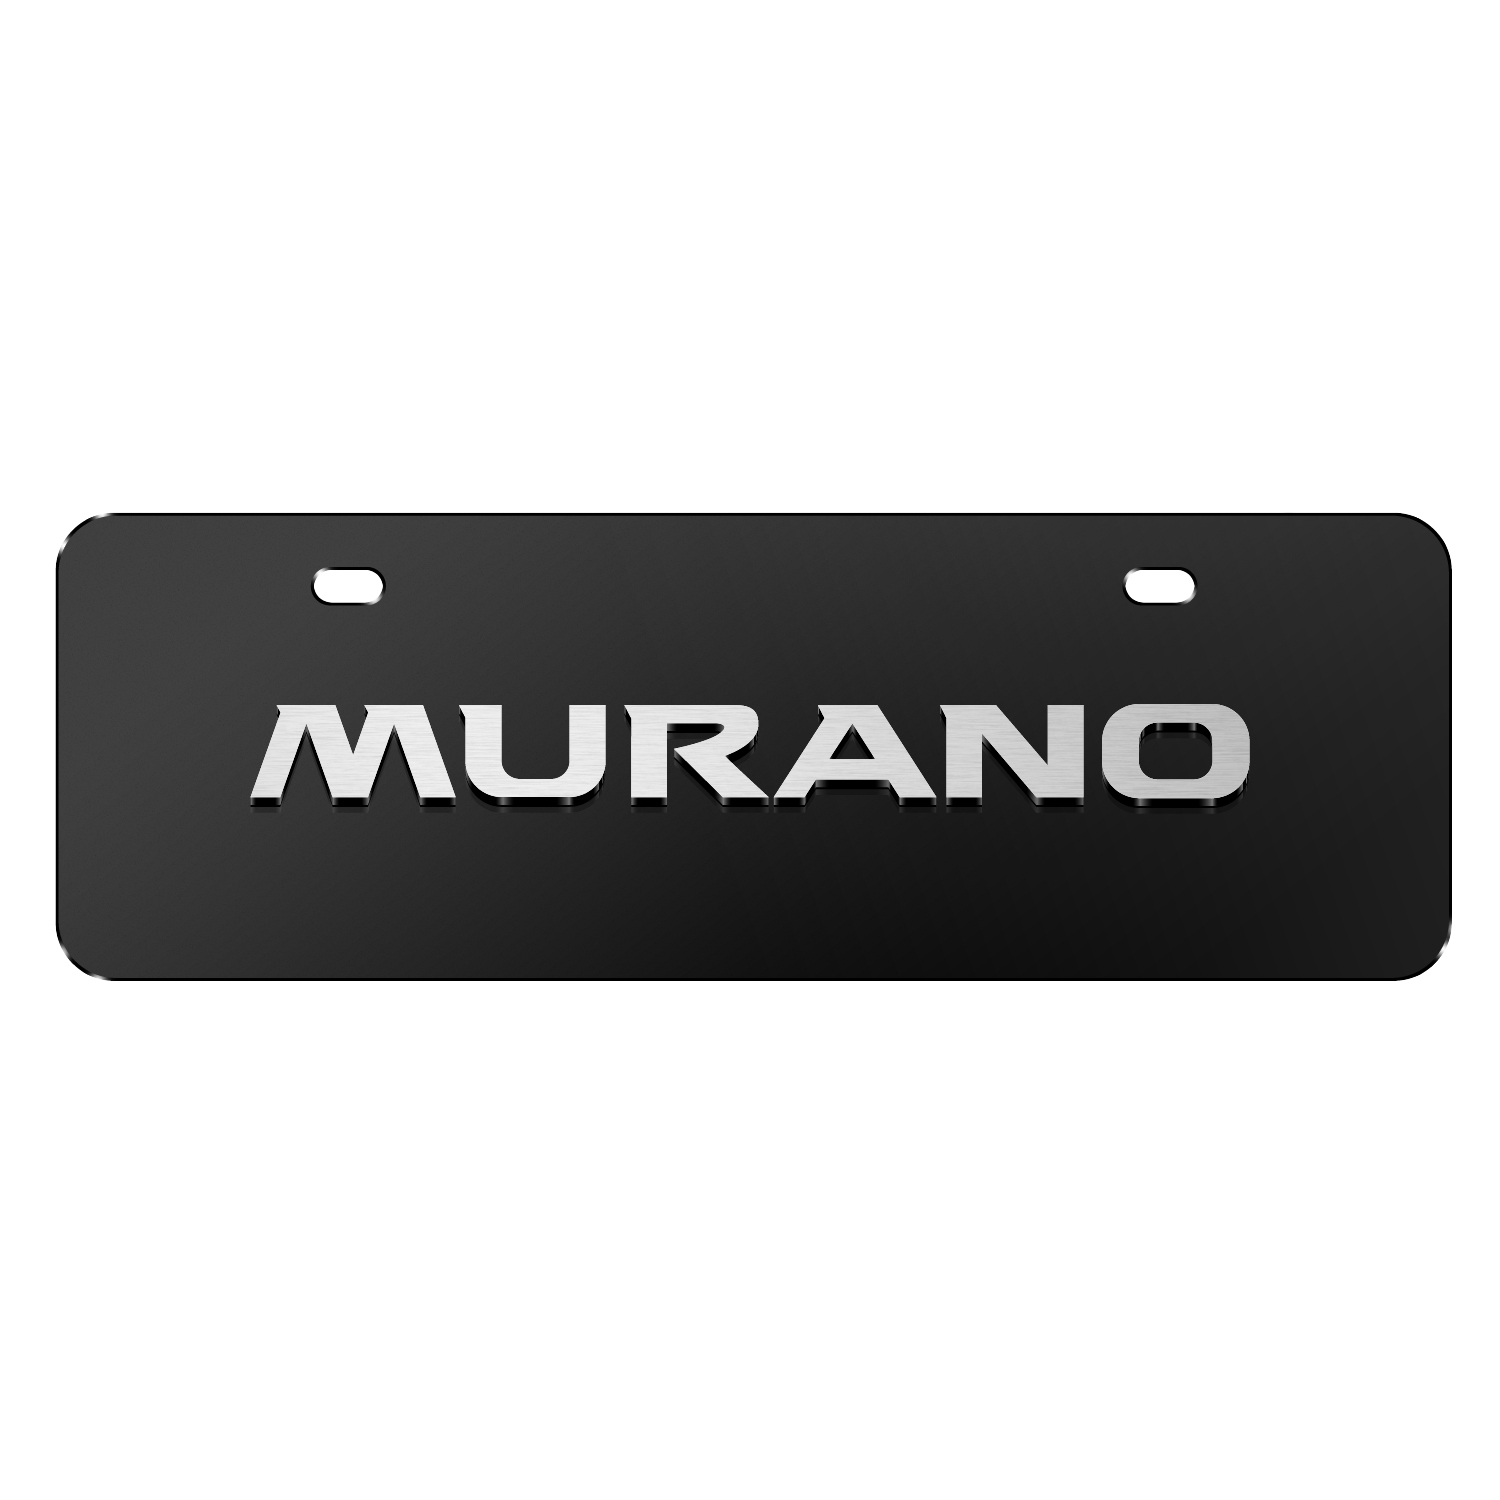 """Nissan Murano 3D Black 12""""x4"""" Half-Size Stainless Steel License Plate"""